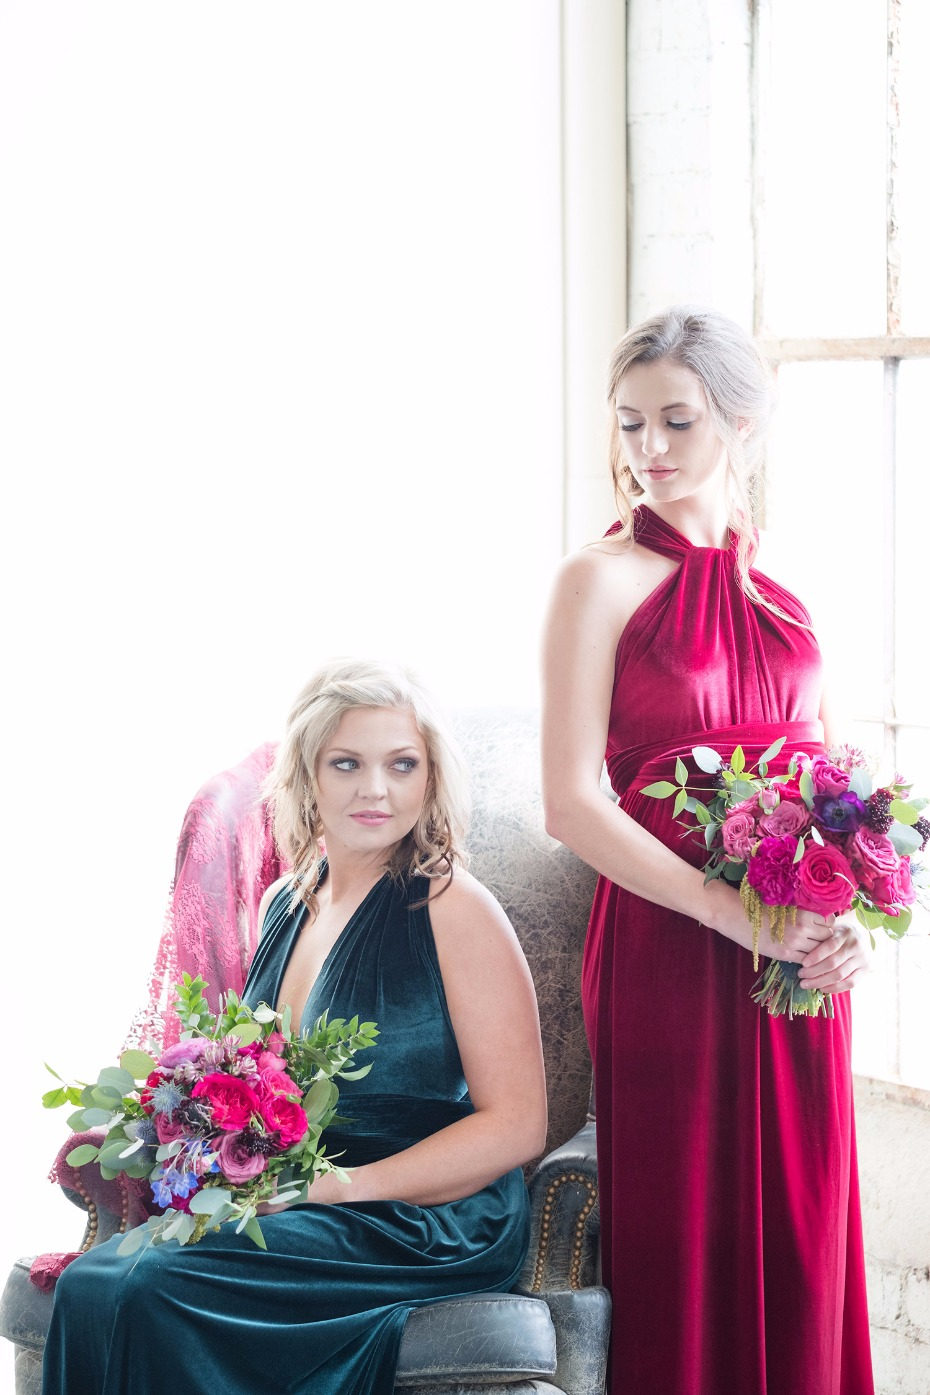 jewel tone bridesmaids dresses in lush velvet